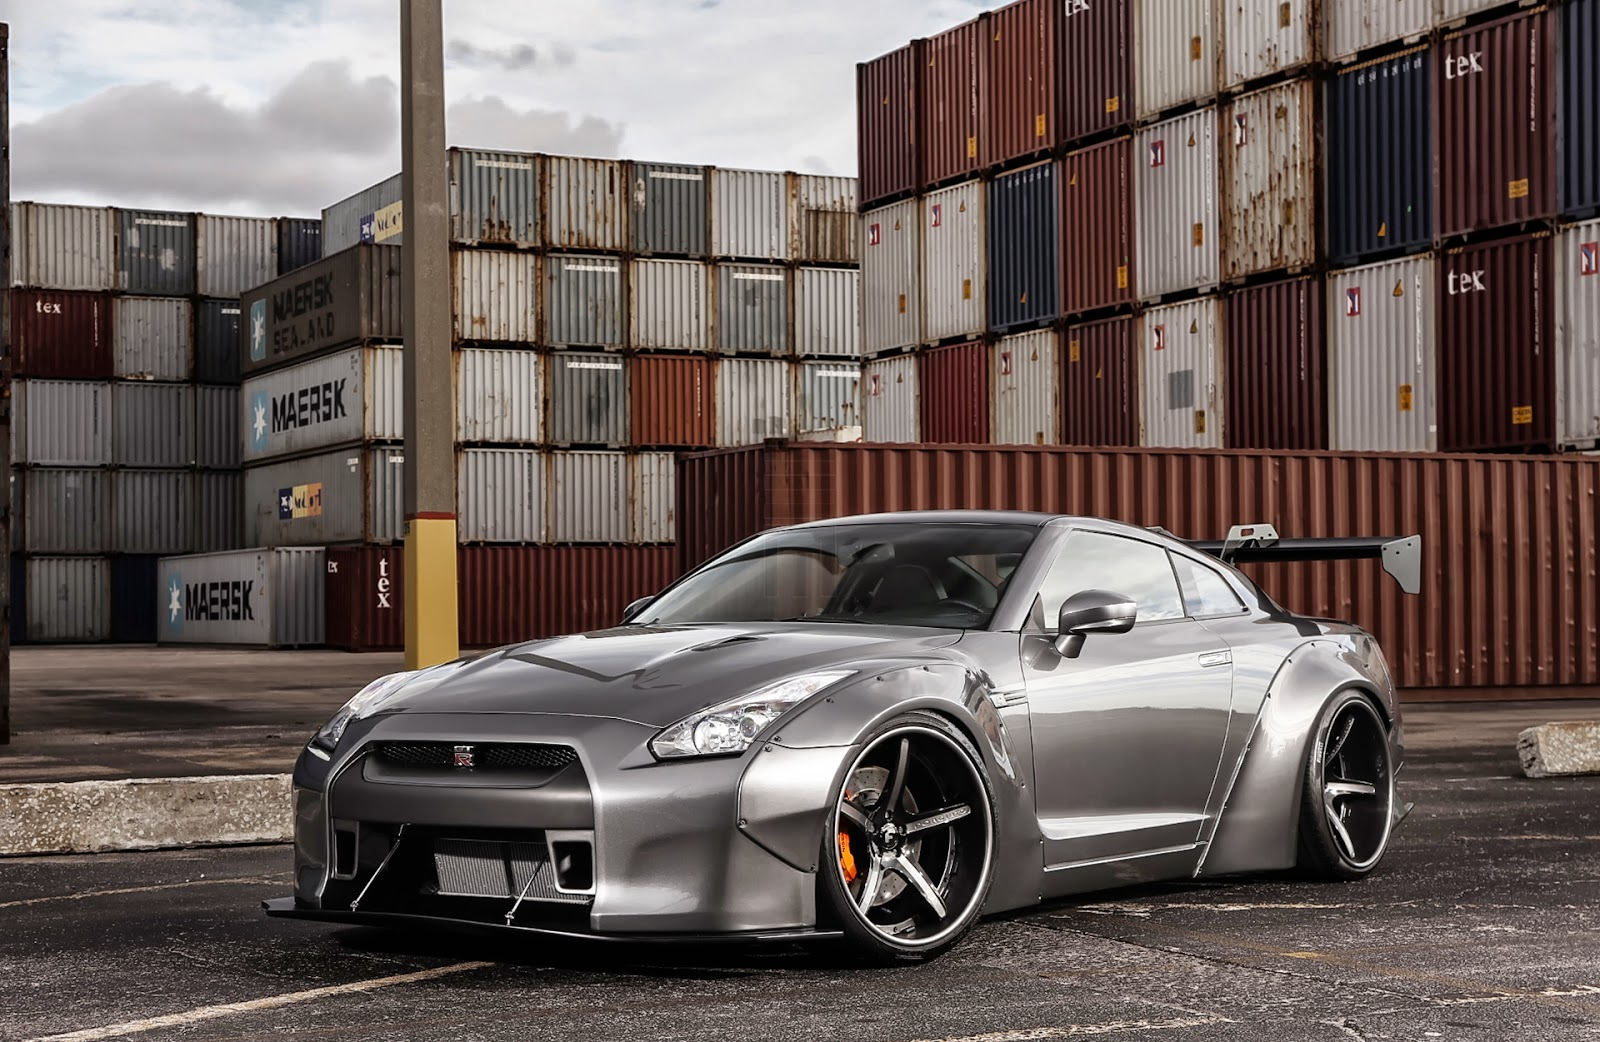 Nissan gt r wide body kit pictures to pin on pinterest for Nissan gtr bodykit